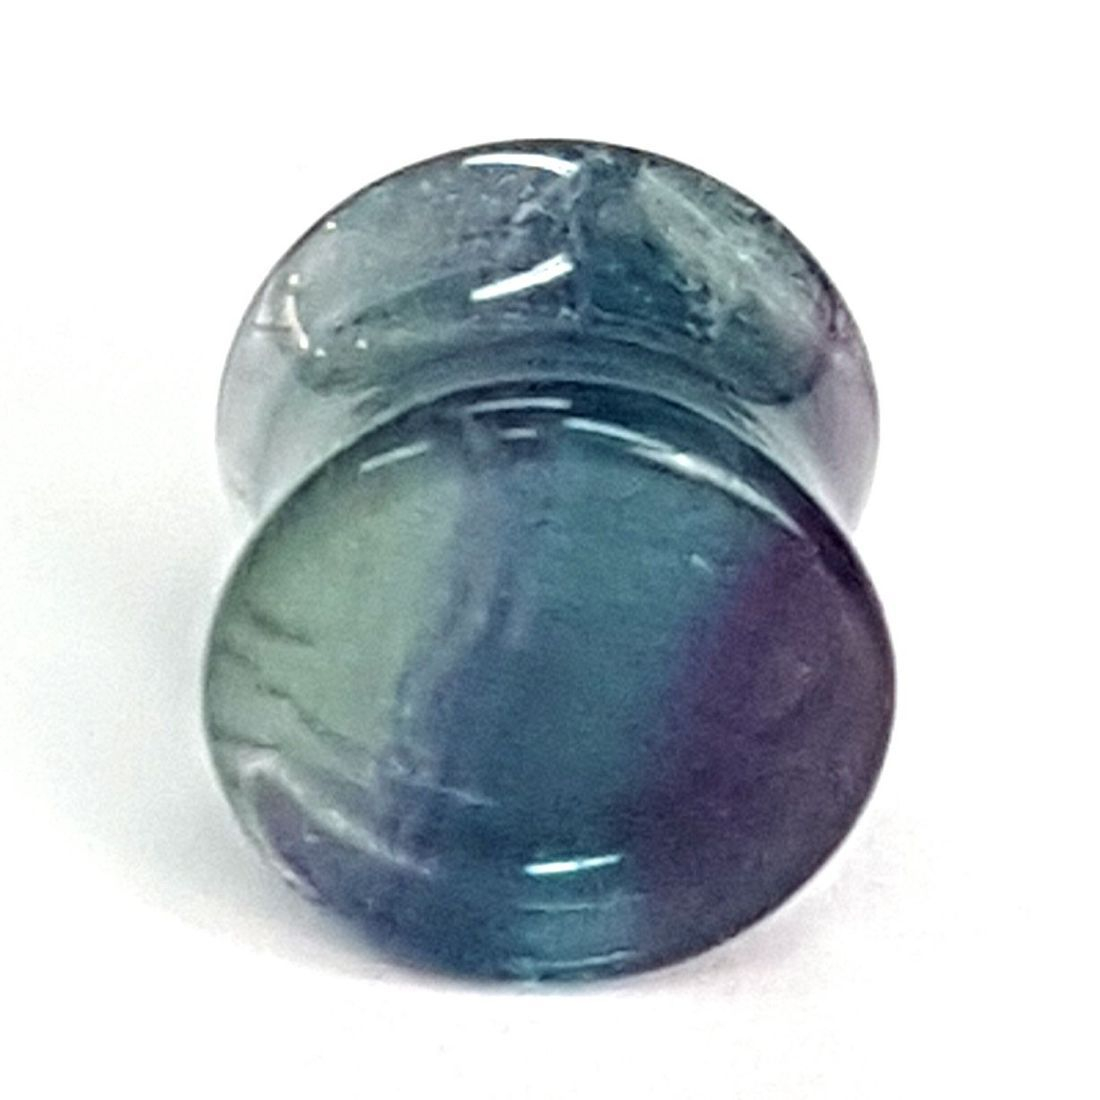 Green and purple Fluorite ear plug  available at Kazbah online or our Leicester City Centre store